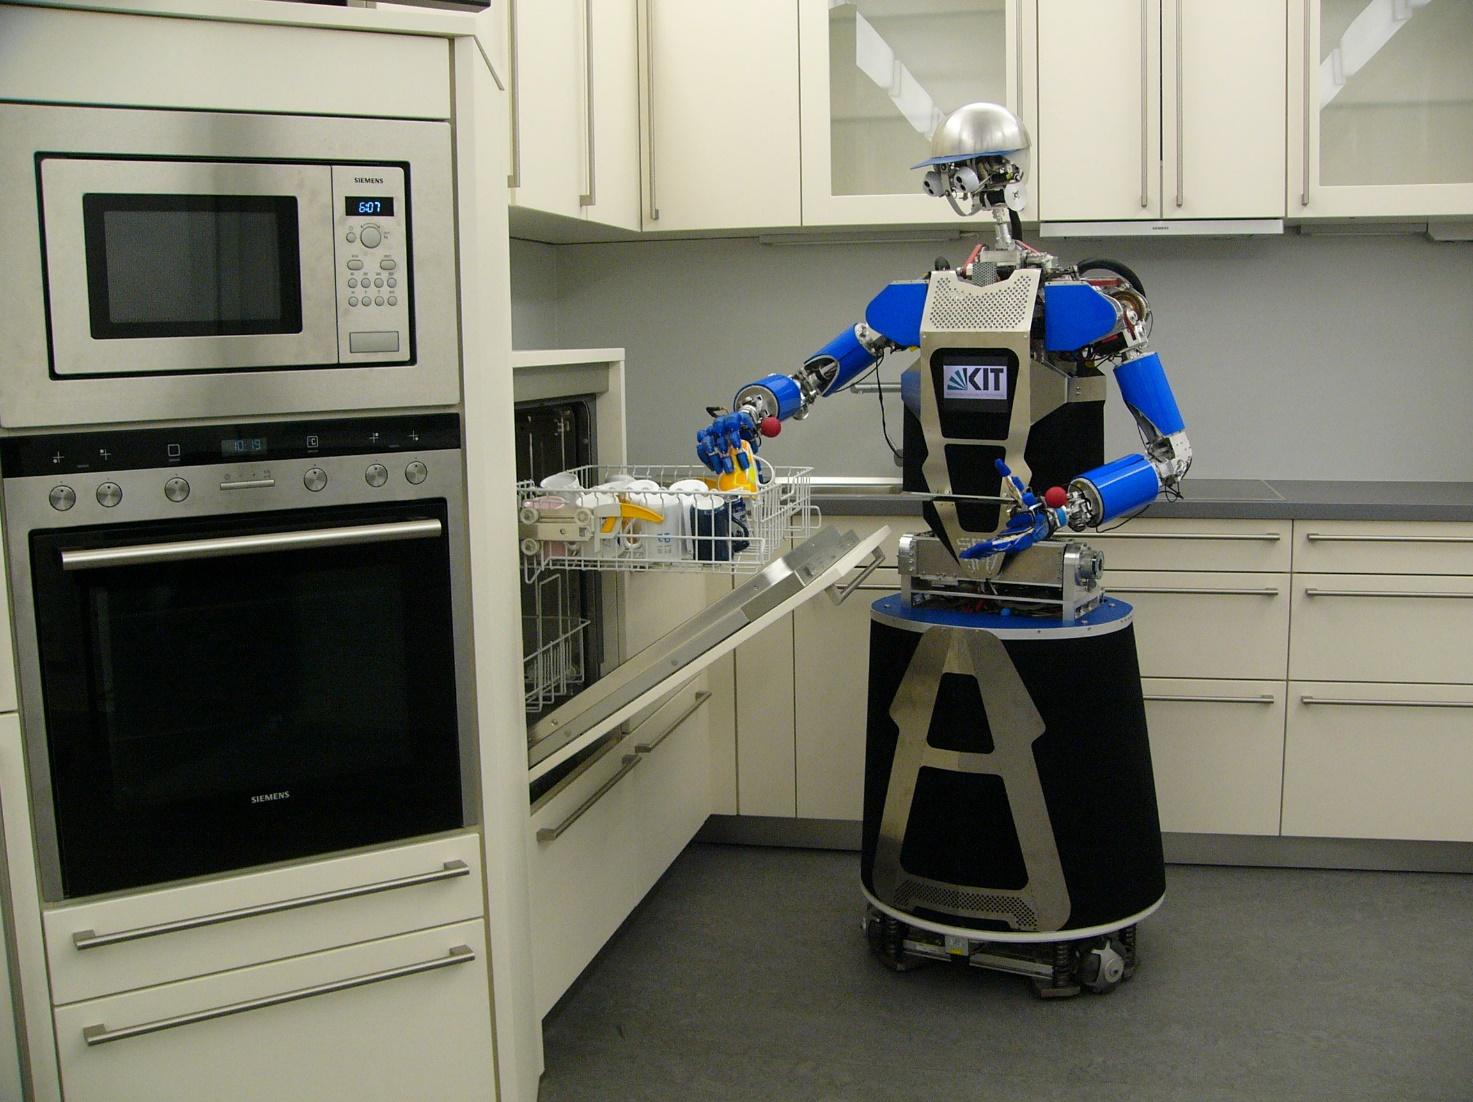 Image ARMAR-III in a robot kitchen